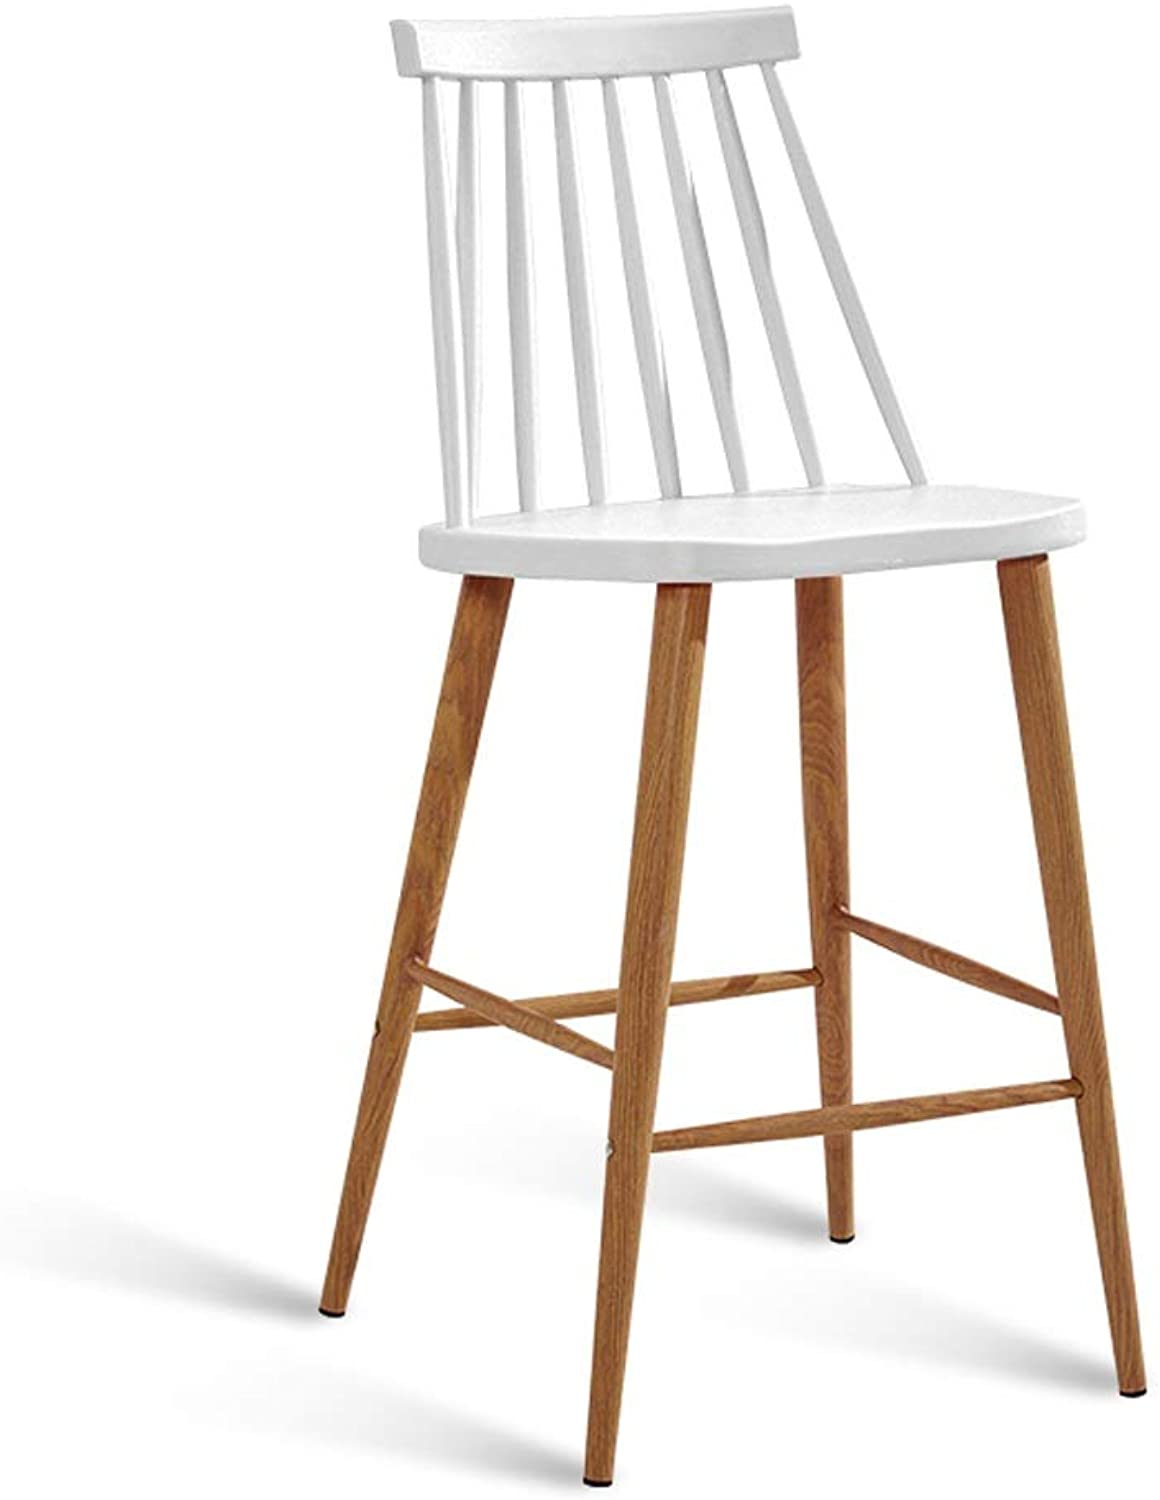 High Bar Chair Counter Height Indoor and Outdoor Bar Stools Seats Dining Chairs Kitchen Cafe Modern Style (color   White)